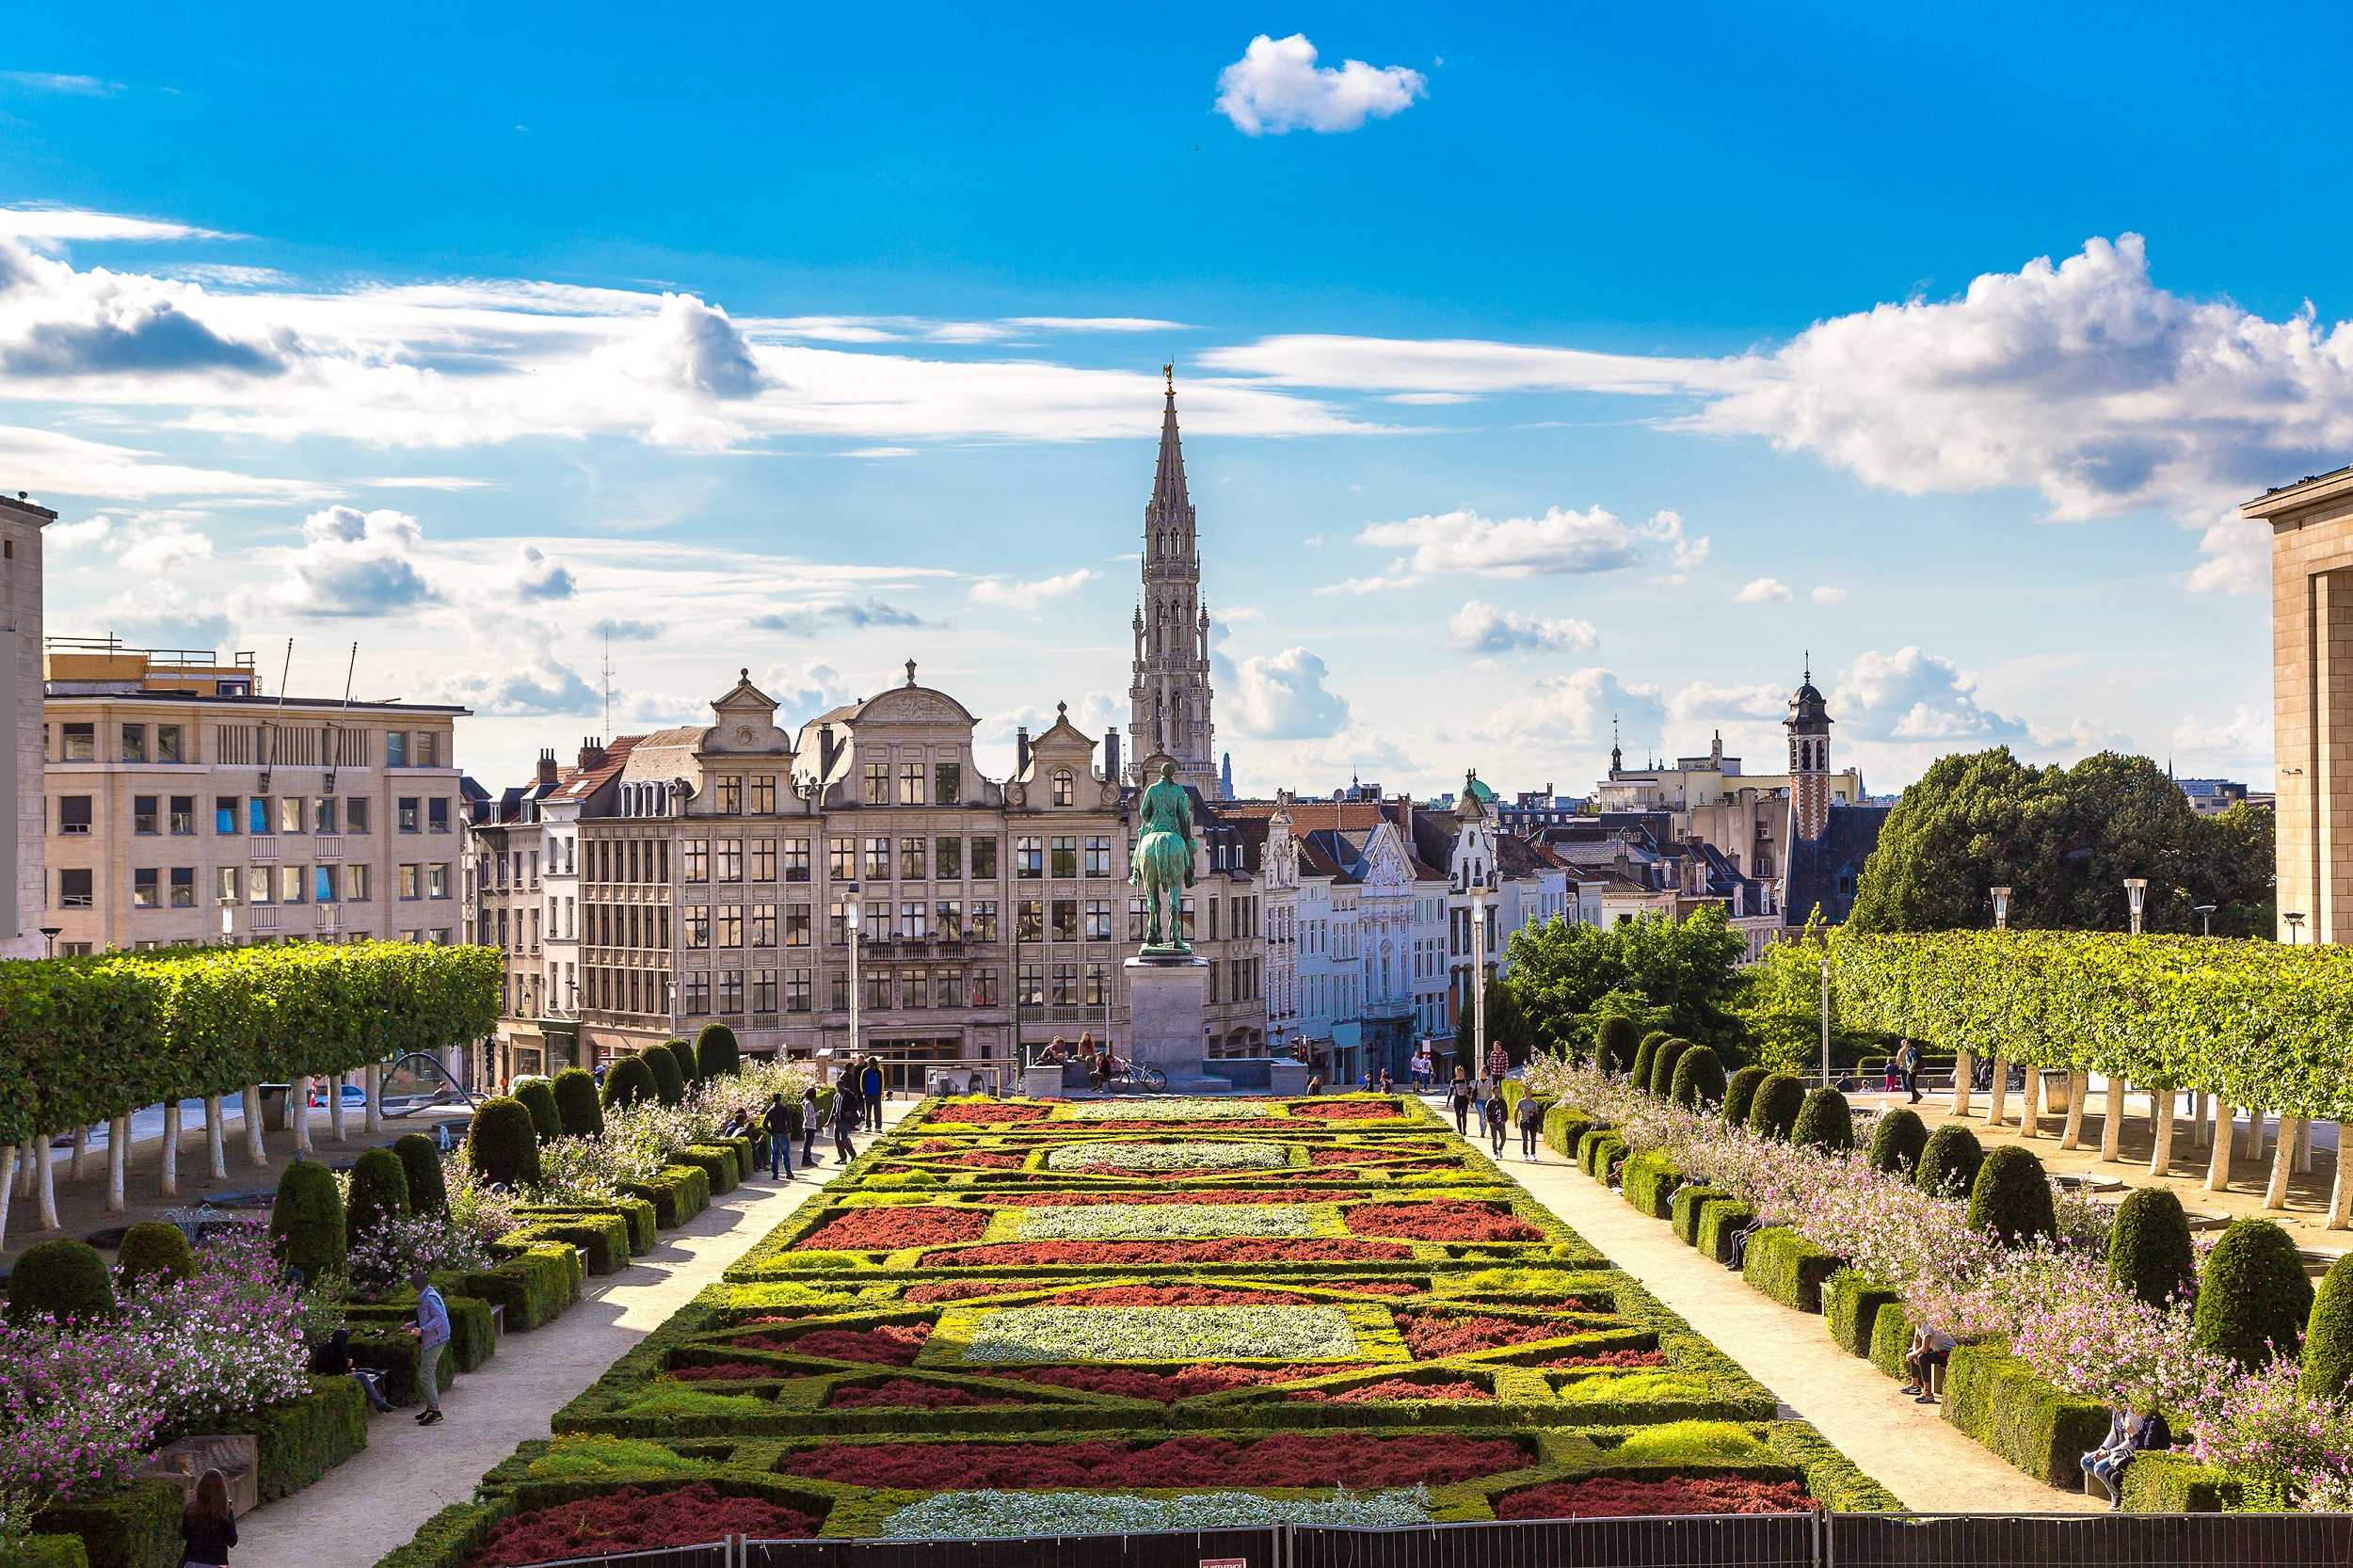 Stedentrip Brussel